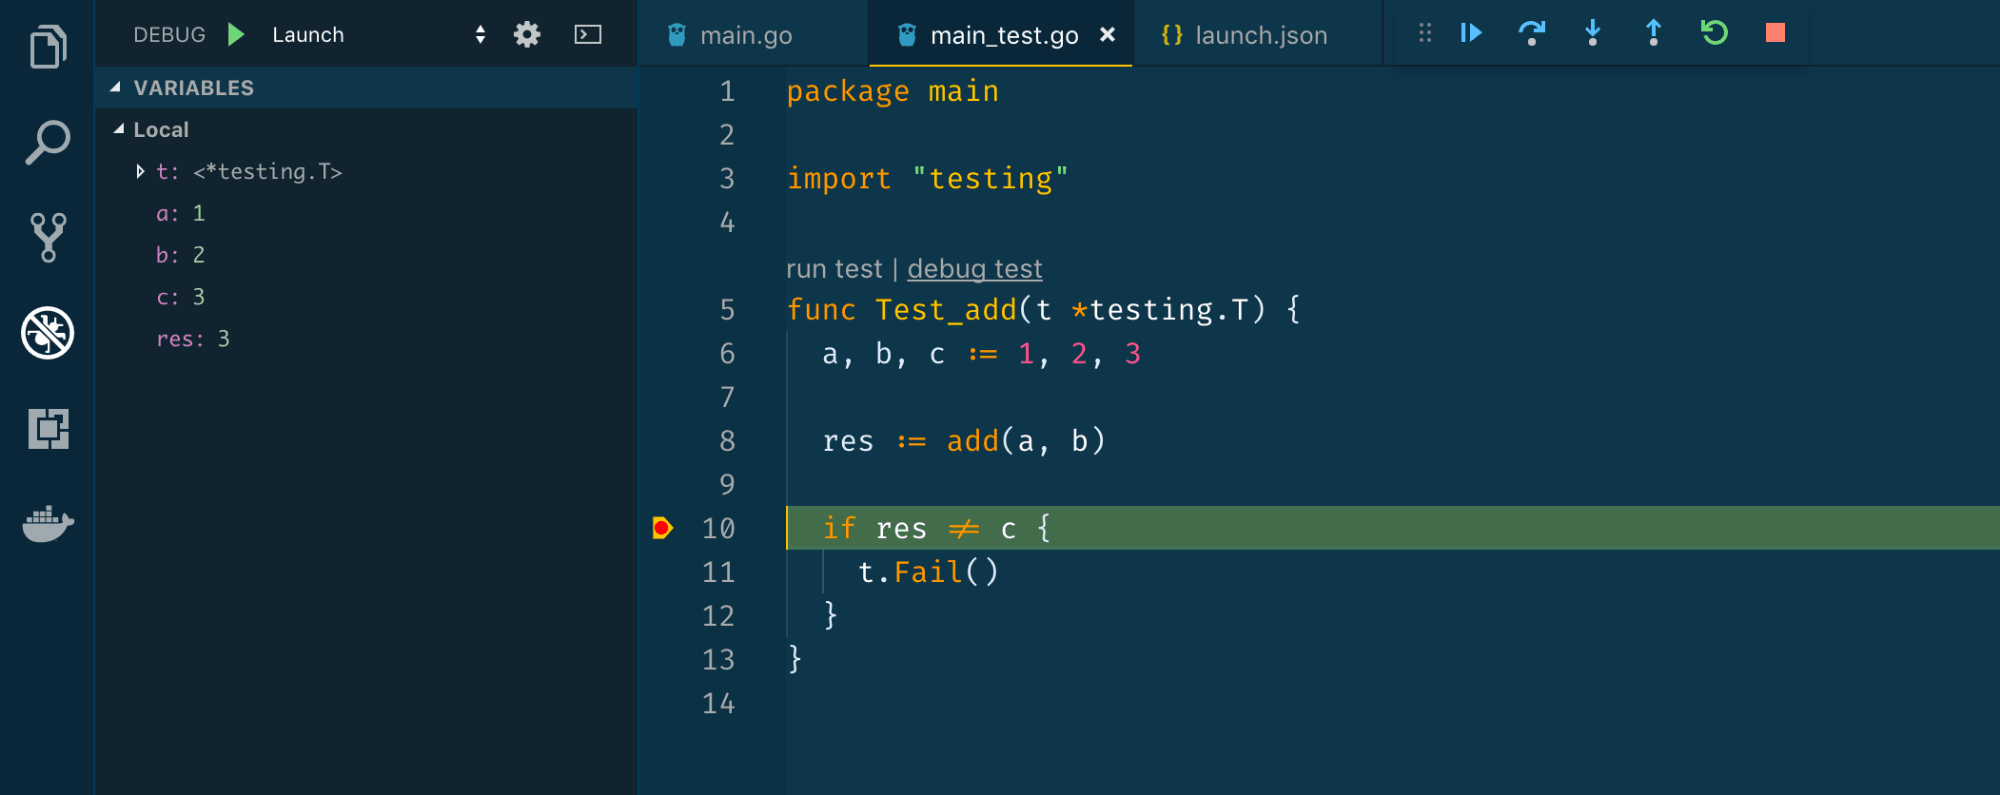 Adding breakpoint on Line 10